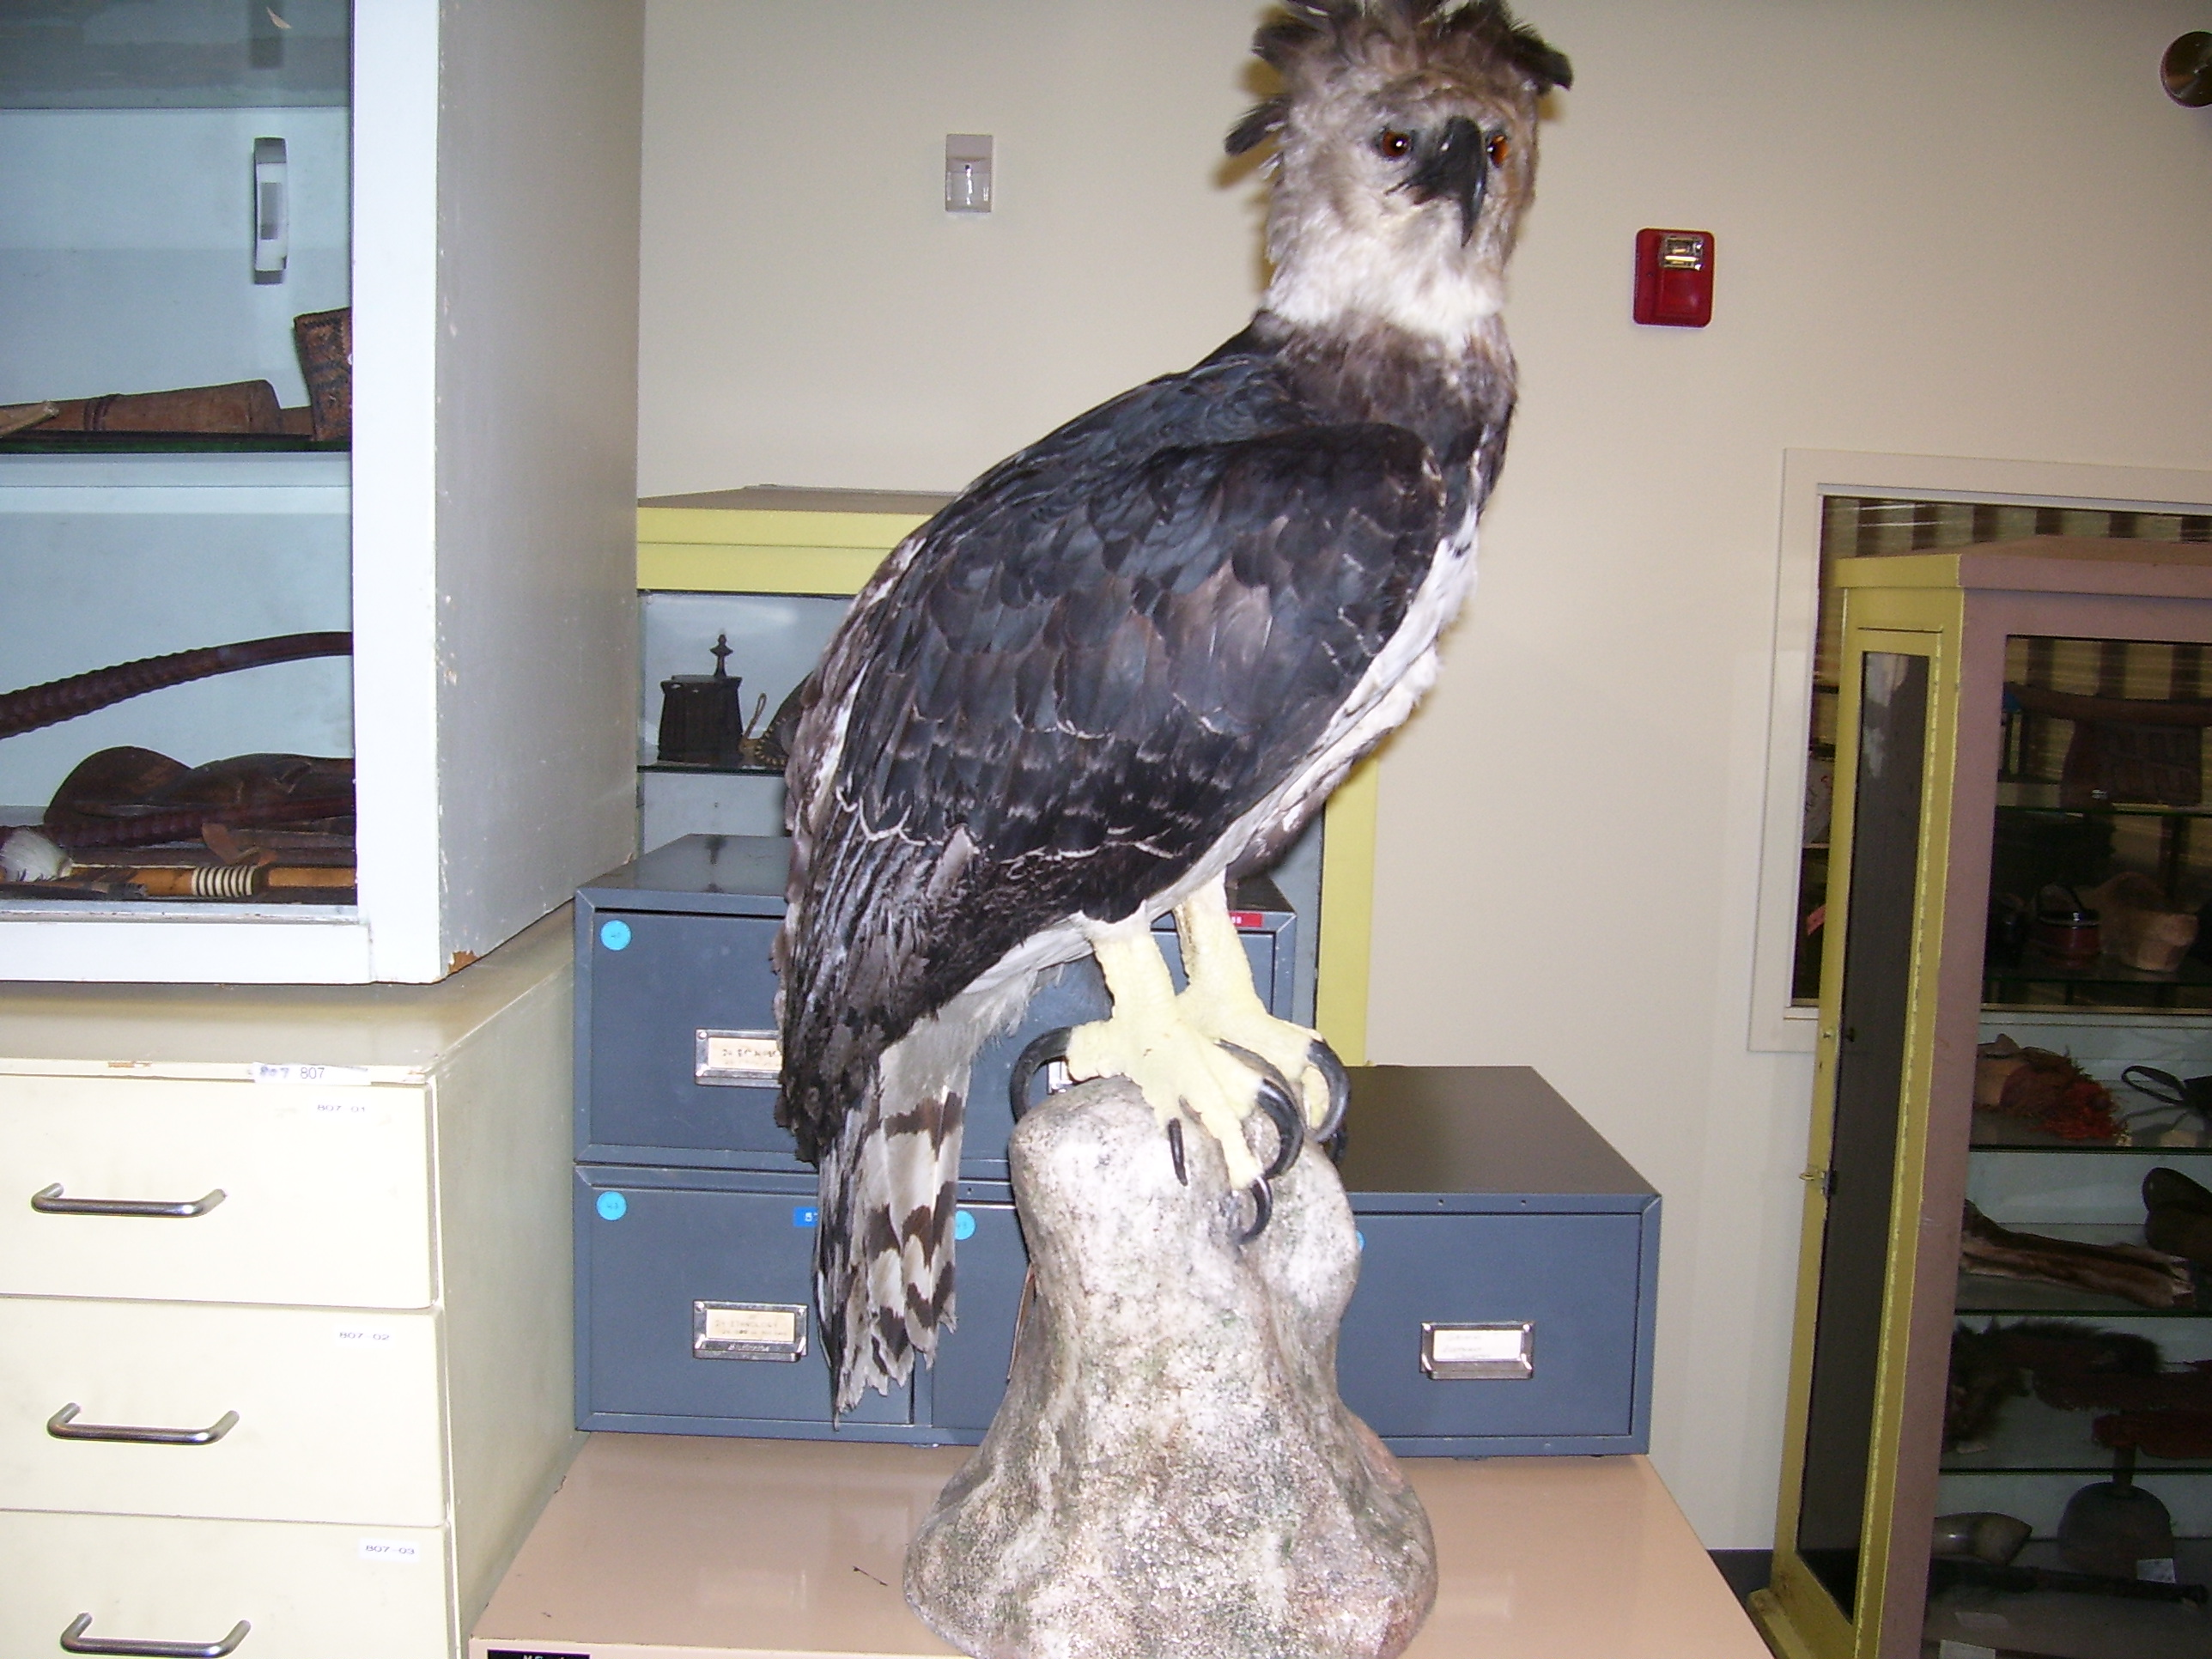 harpy eagle welcome to the taxidermy net forum and community